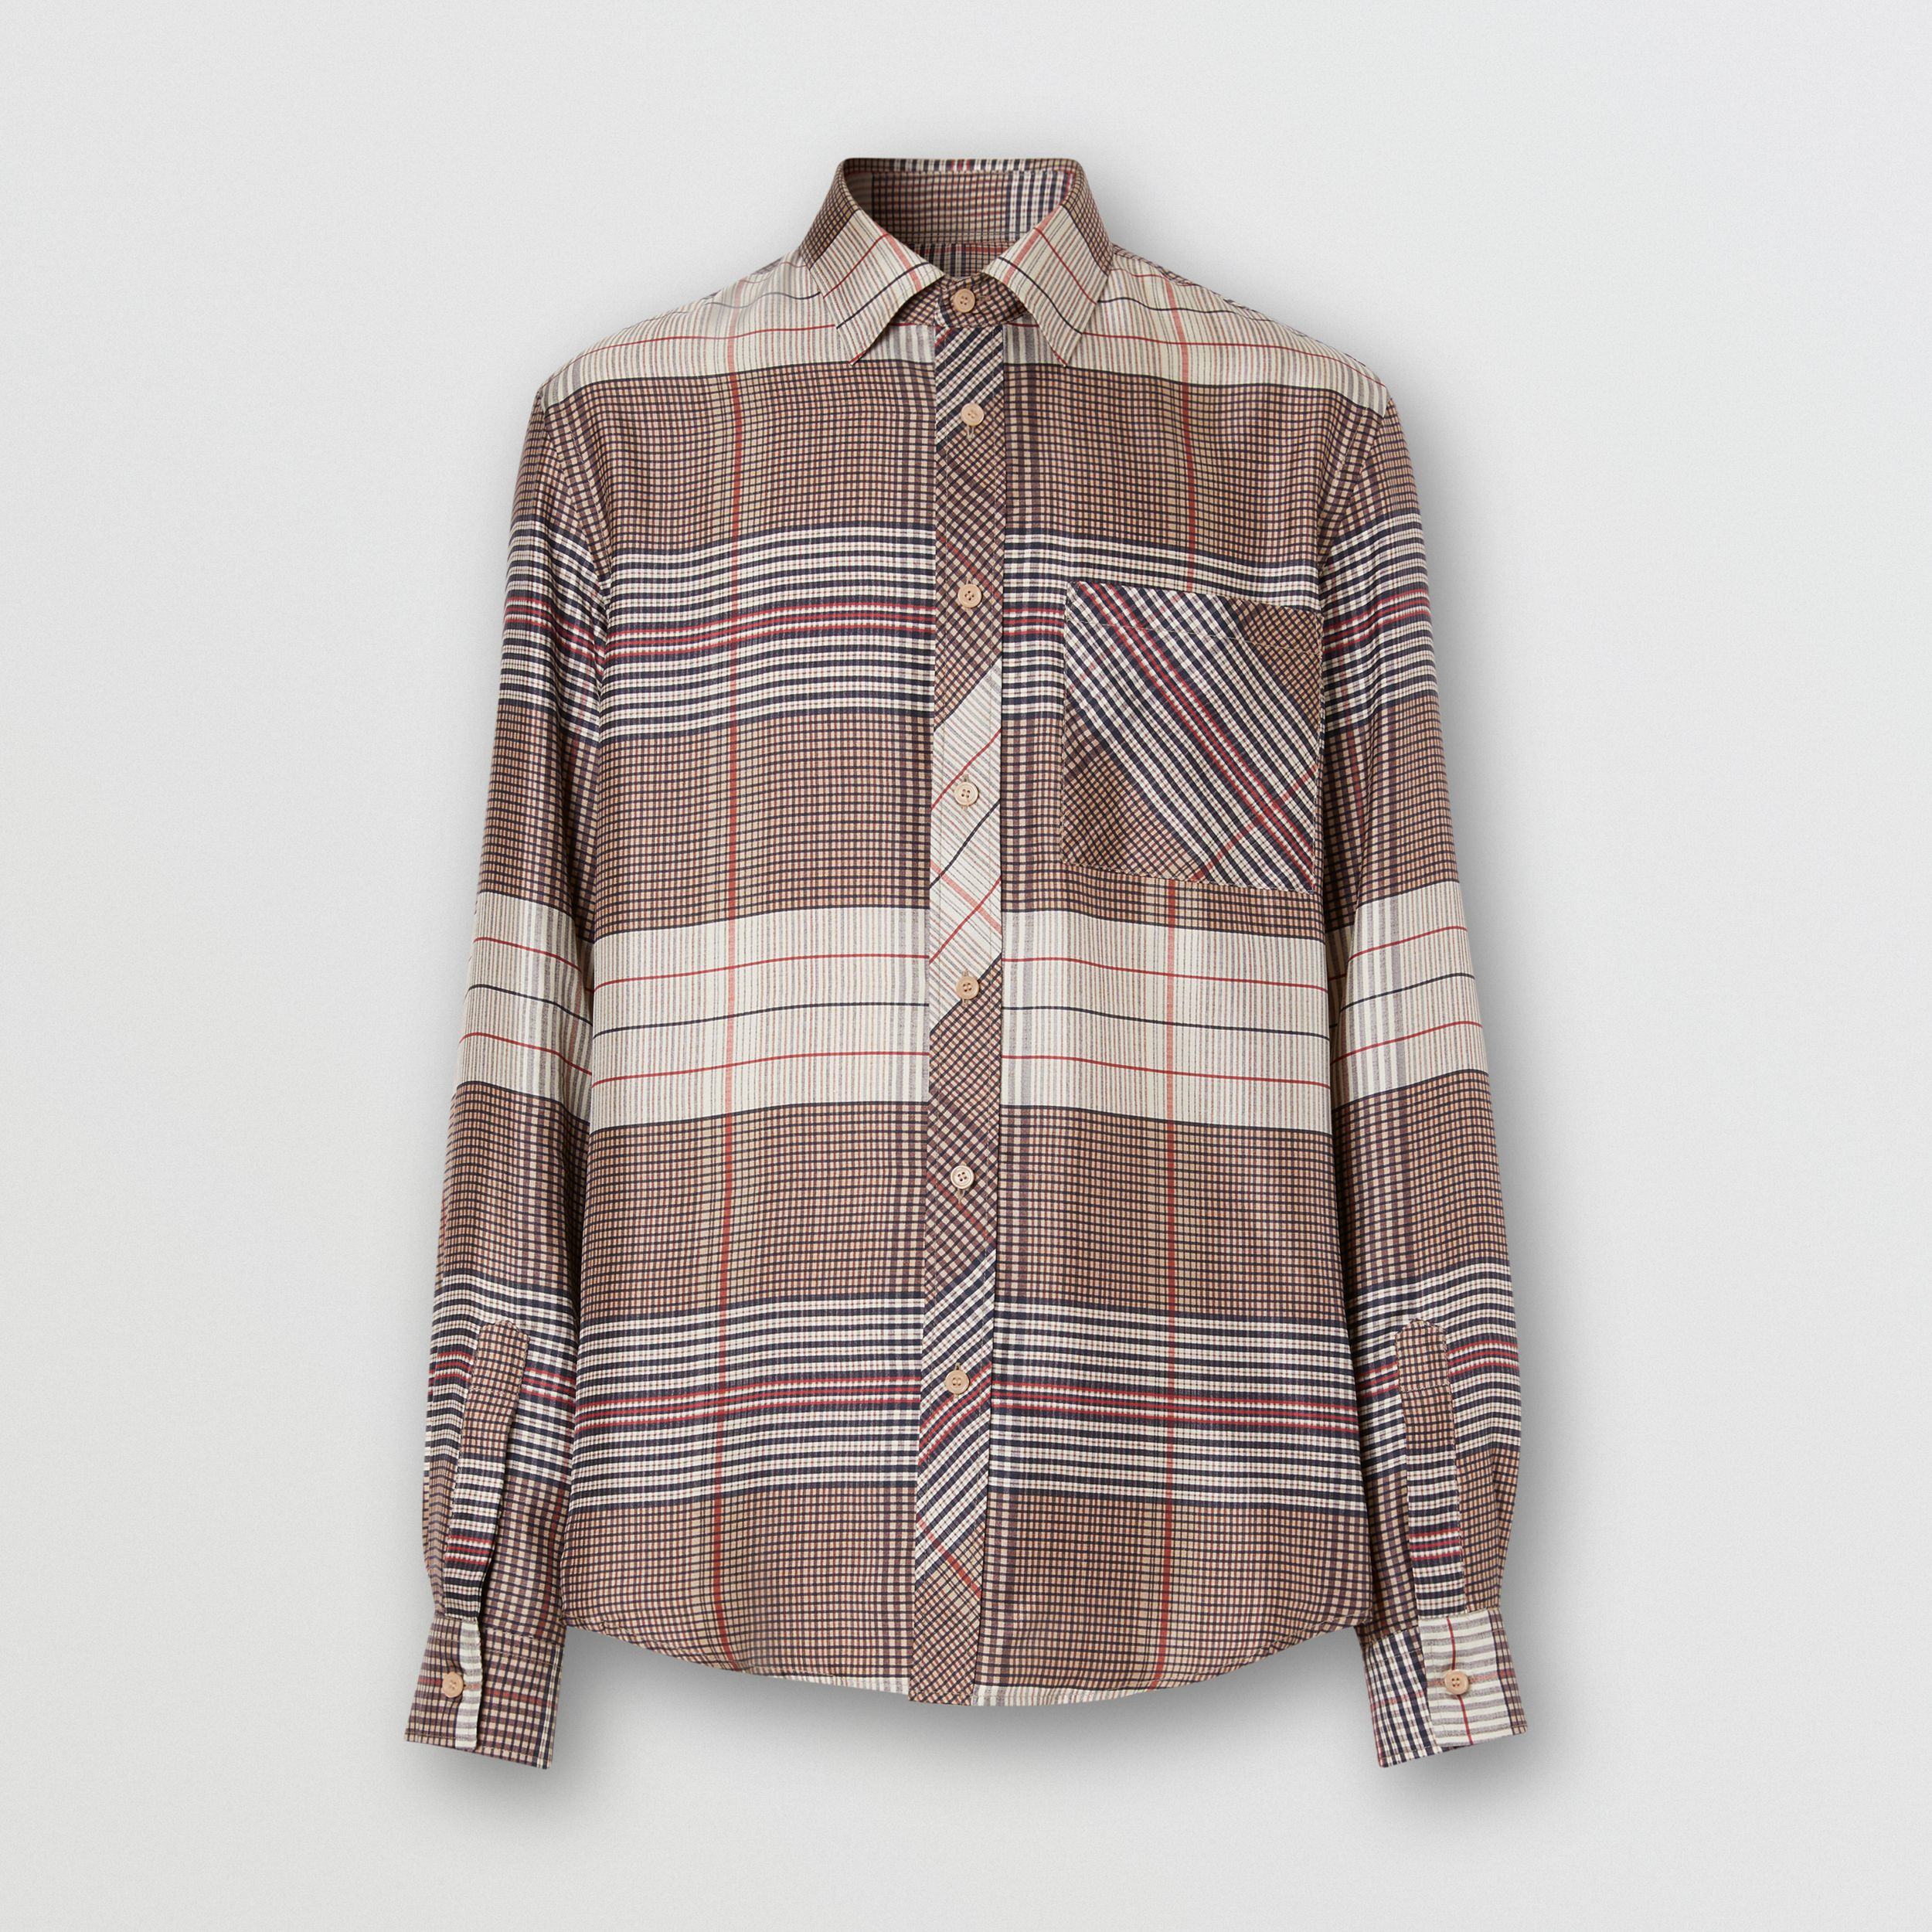 Classic Fit Contrast Check Silk Twill Shirt in Buttermilk | Burberry Canada - 4